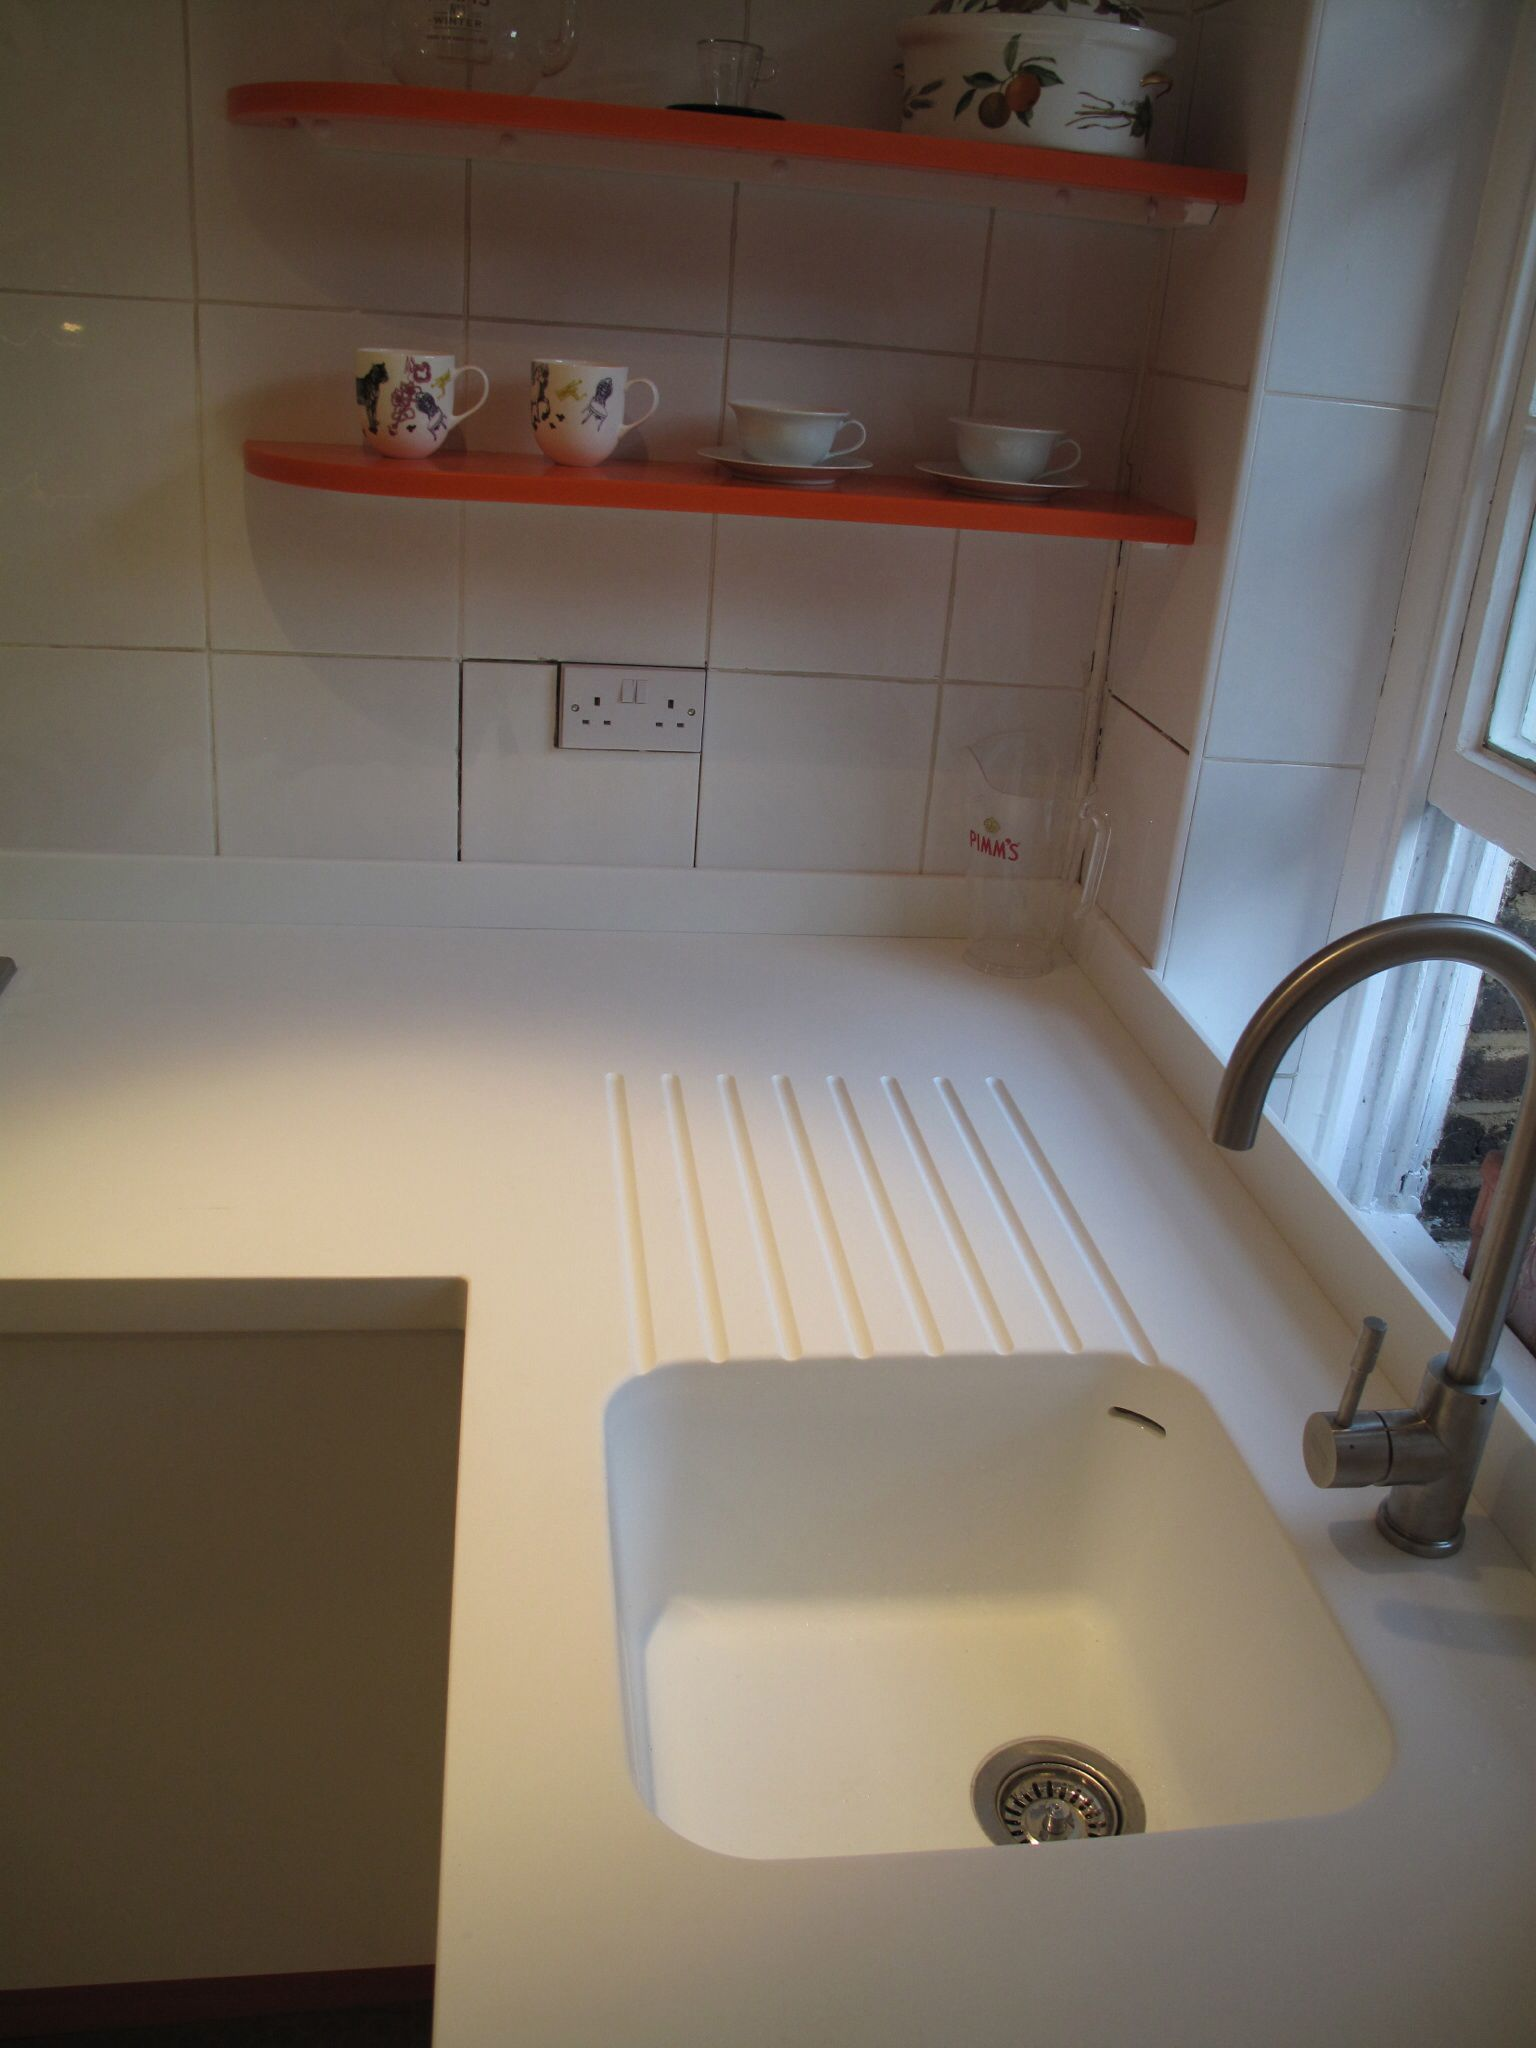 Seamless Corian Sink And Worktop With Routed Drainer Grooves Corian Countertops Countertops Sink